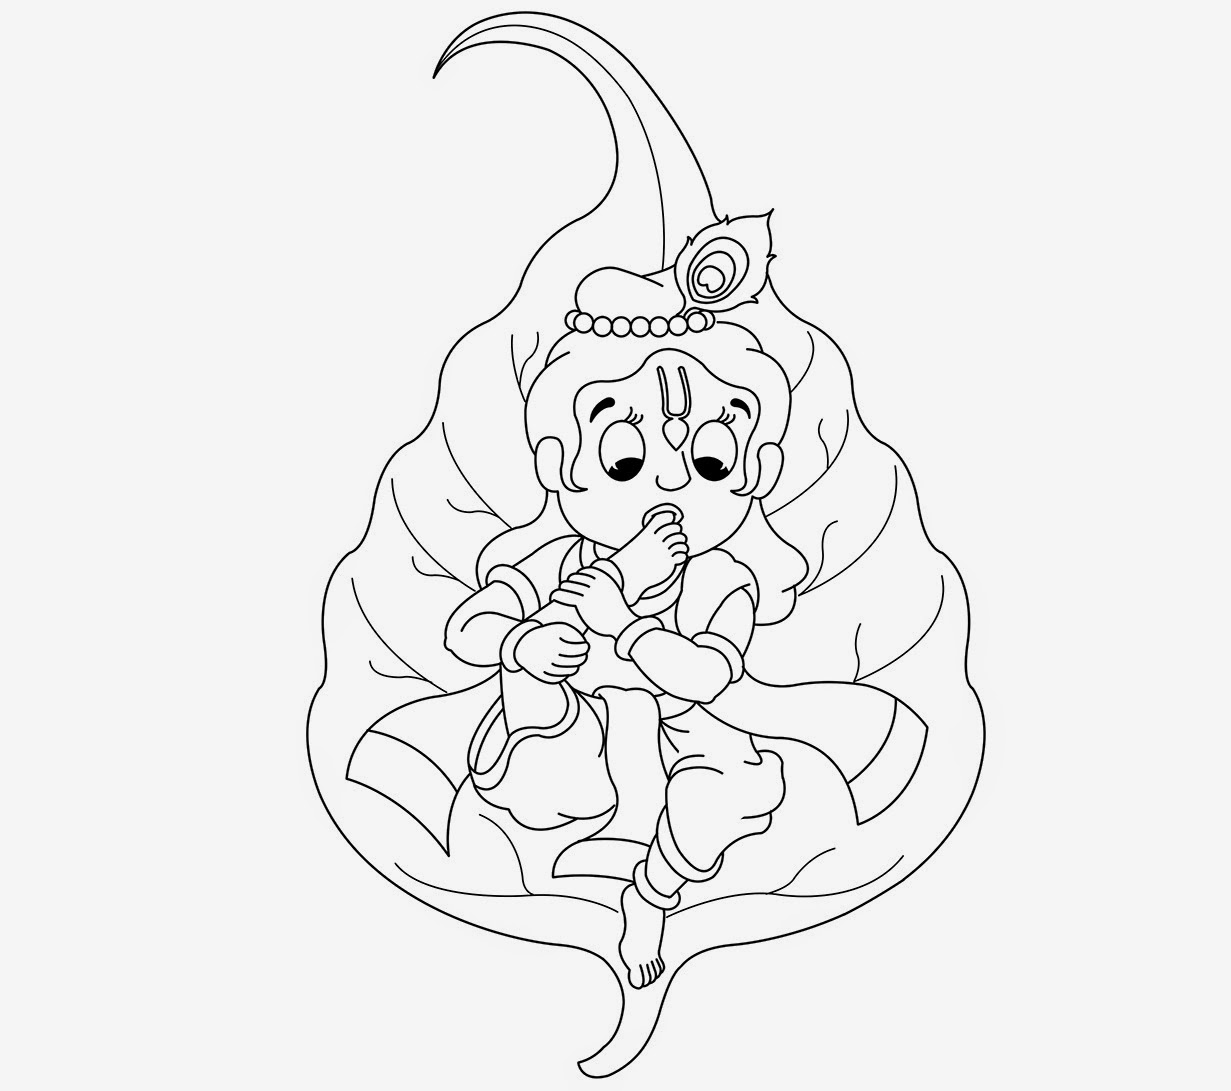 little krishna coloring drawing free wallpaper - Baby Krishna Images Coloring Pages